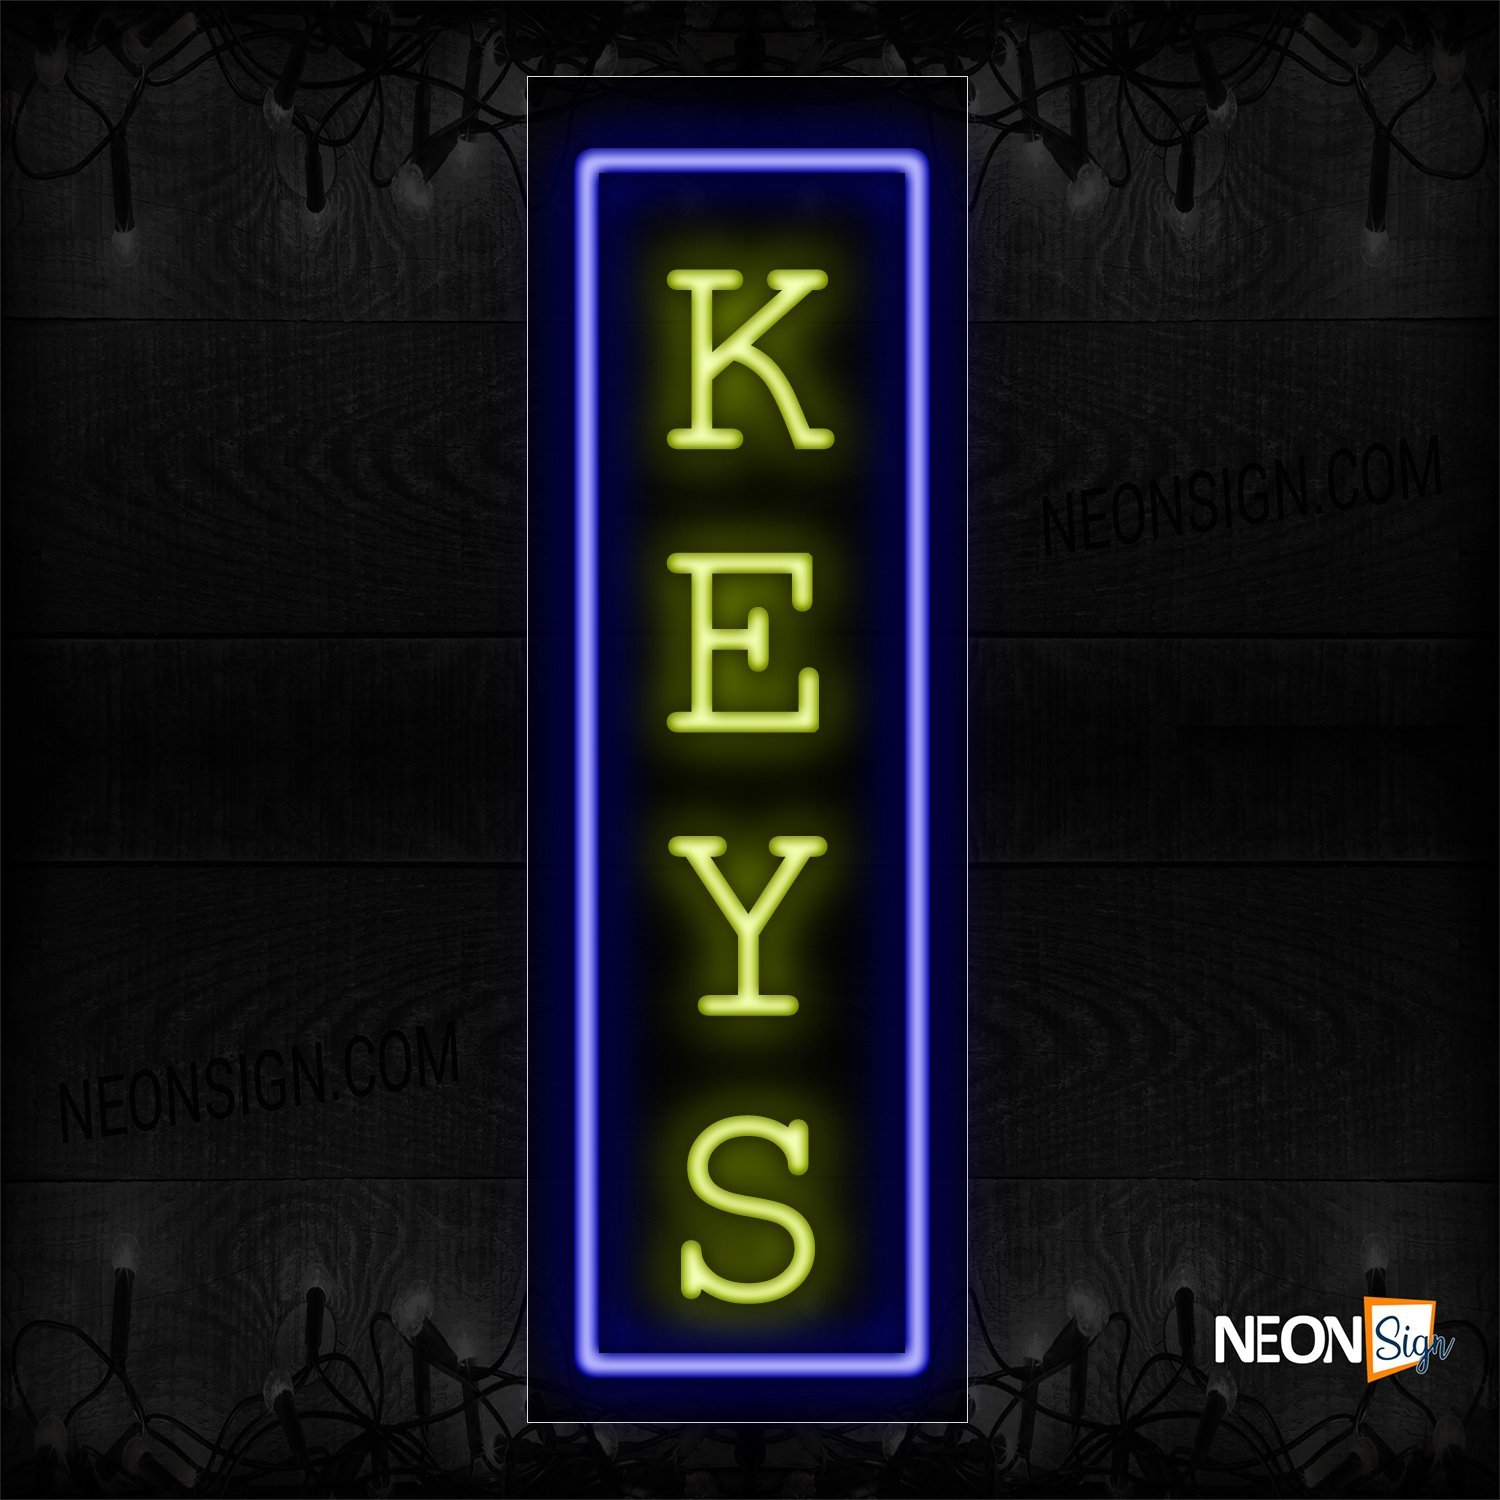 Image of 10997 Keys In Yellow With Blue Border Neon Sign - Vertical_13x32 Black Backing